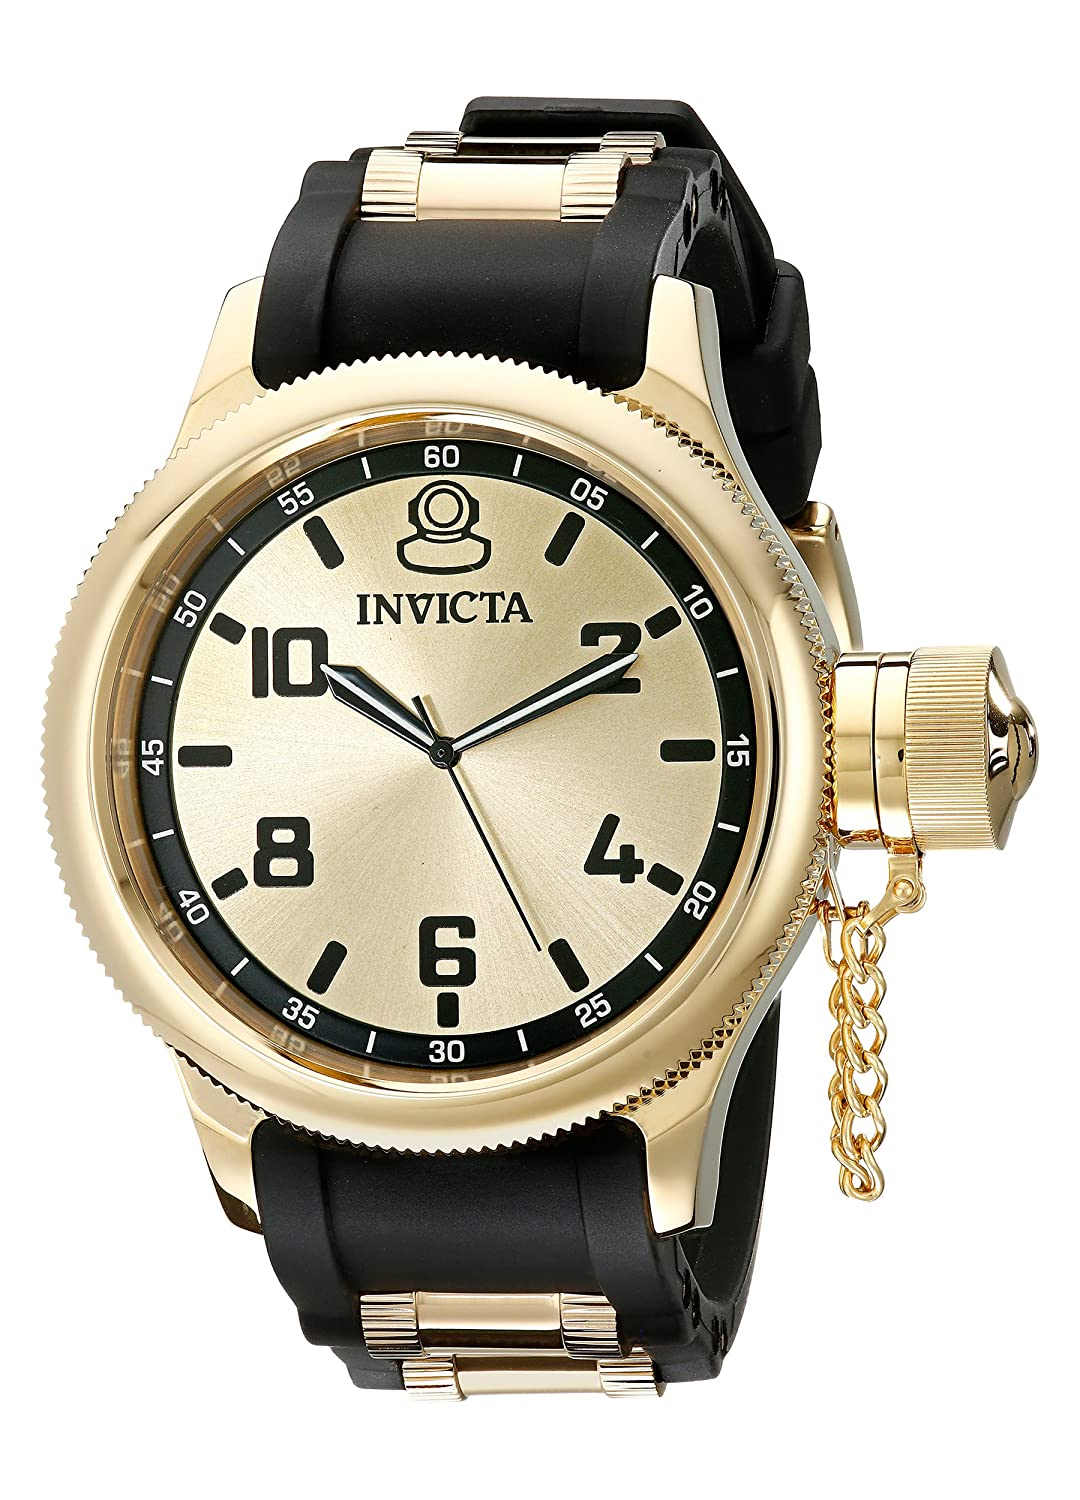 Invicta Men s 1438 Russian Diver Gold Stainless Steel Watch with Polyurethane Band